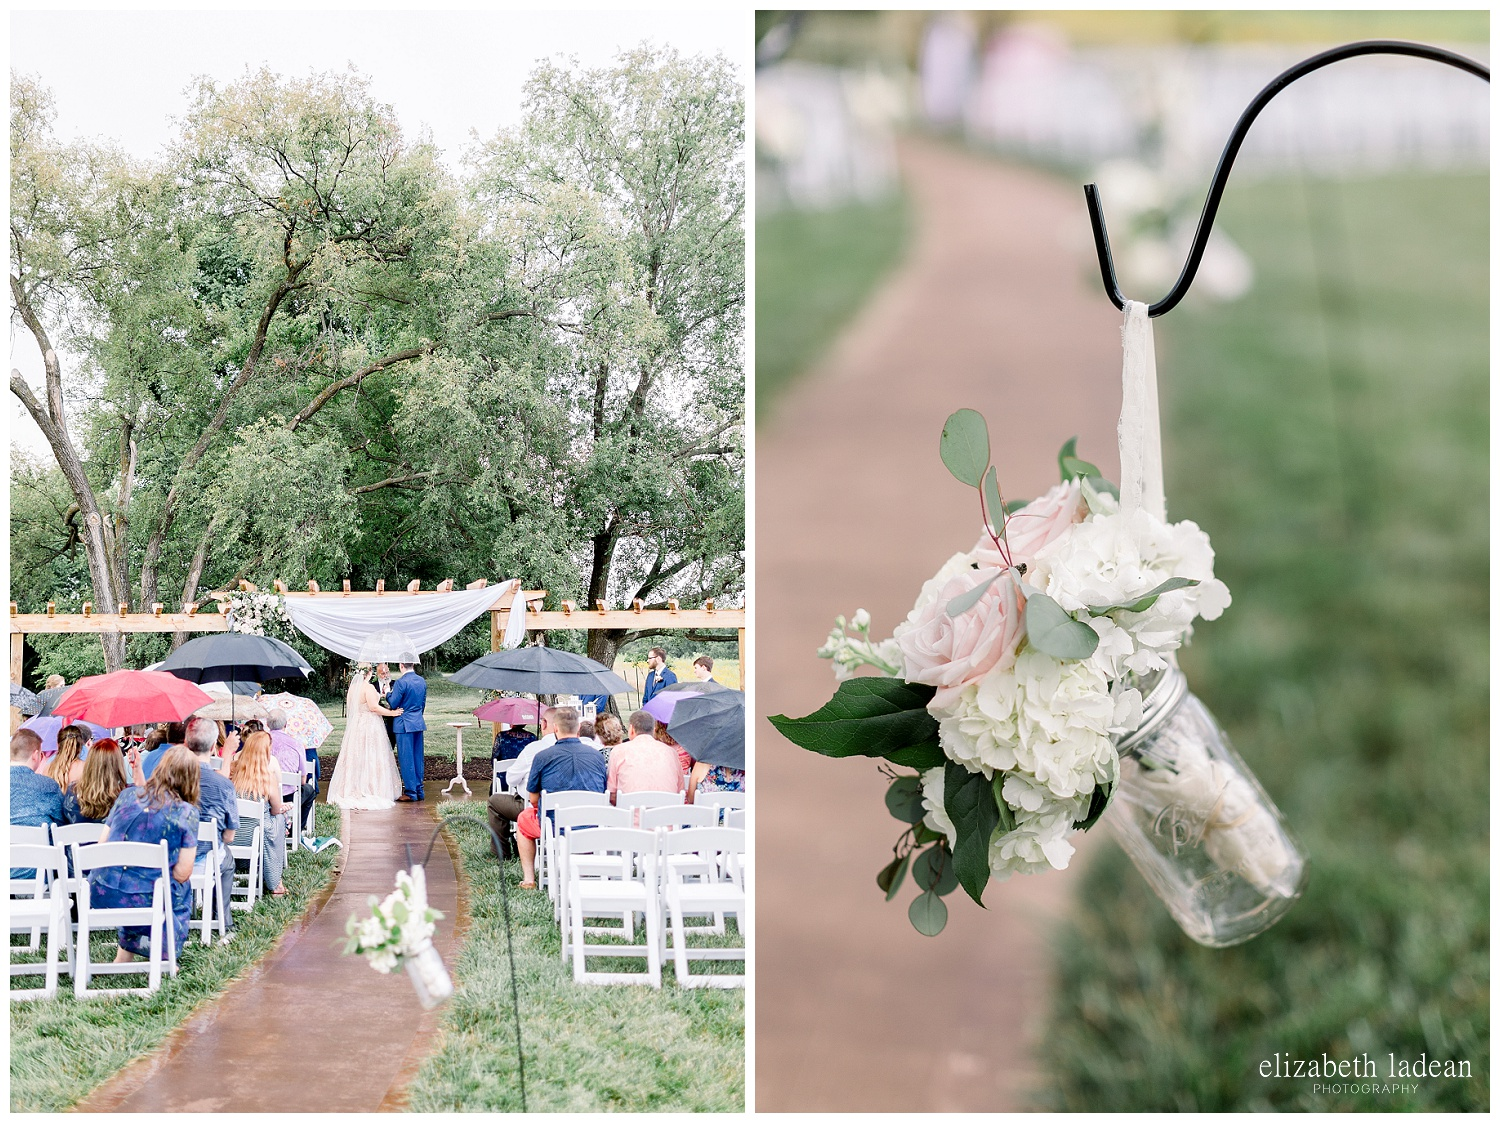 Rainy-KC-Wedding-Legacy-at-Green-Hills-H+J-0630-elizabeth-ladean-photography-photo-_8910.jpg